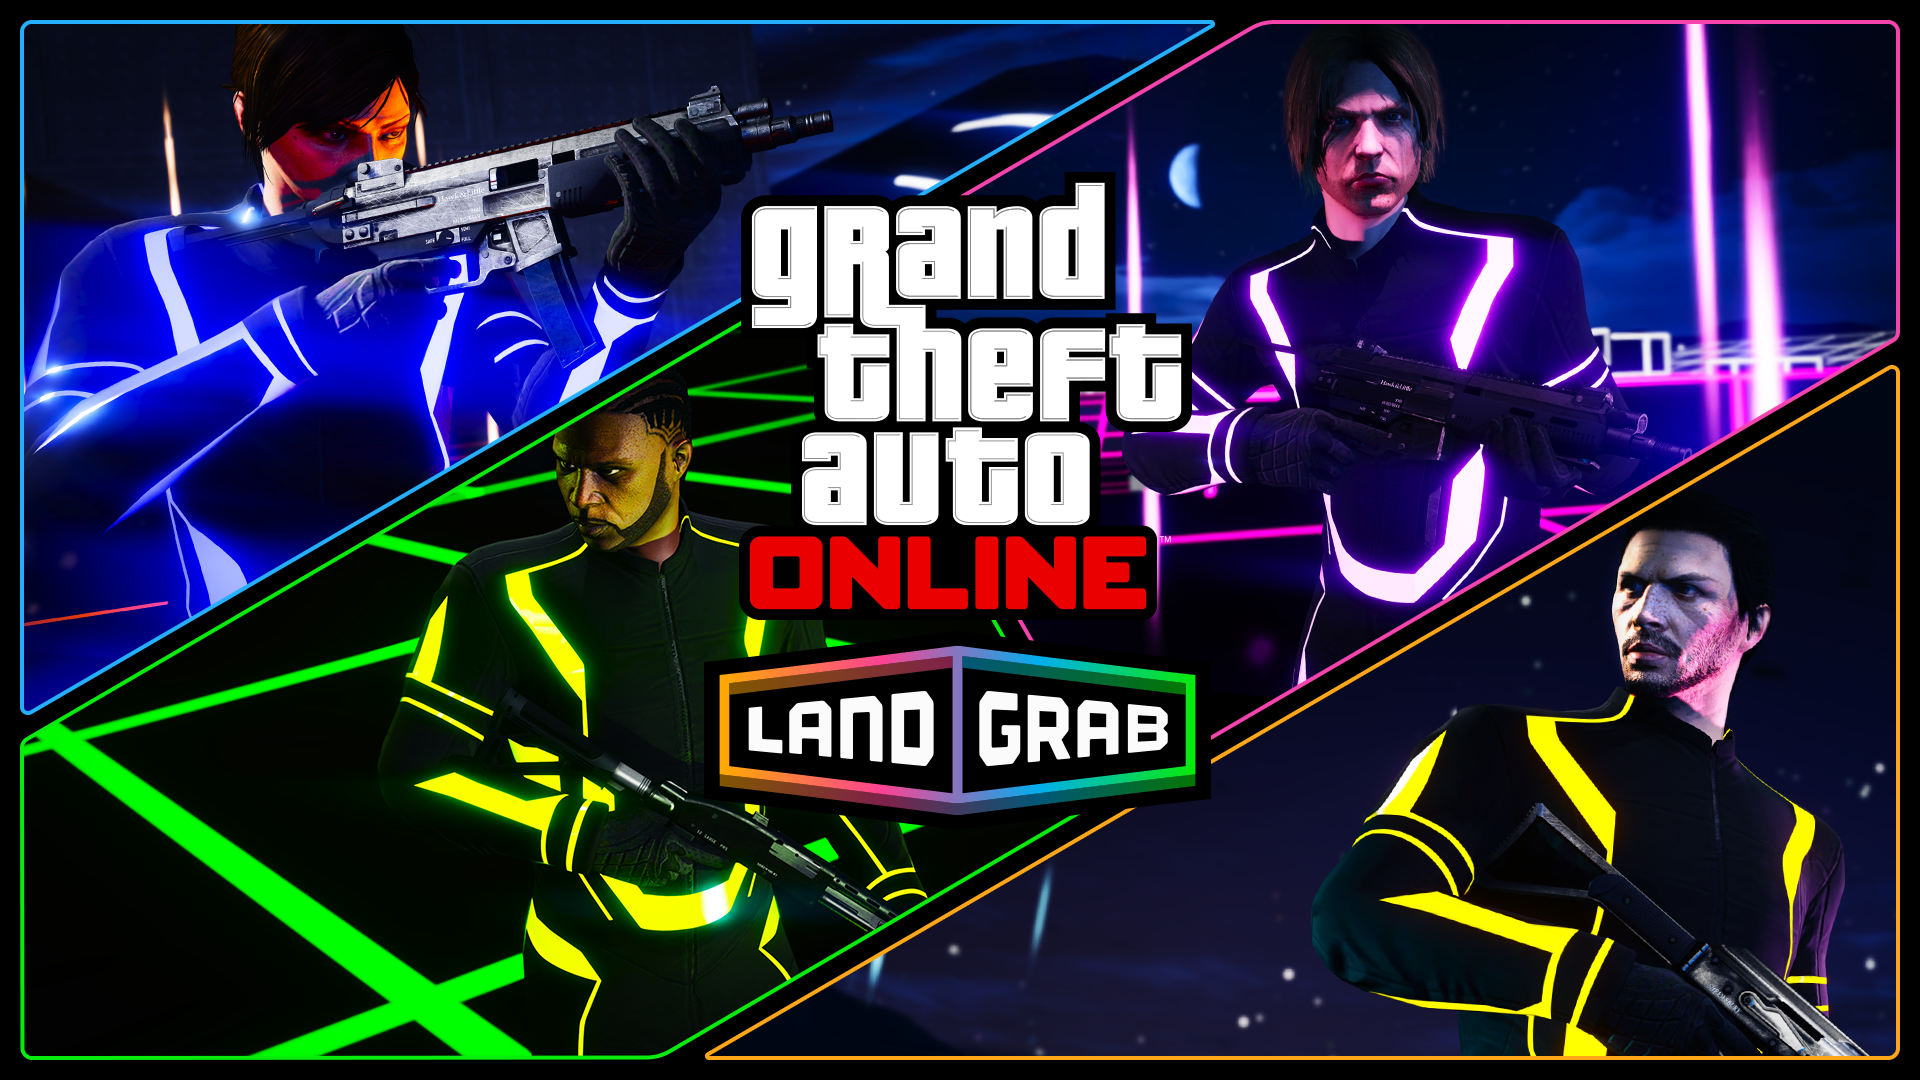 GTA Online Land Grab Adversary Mode Goes Live